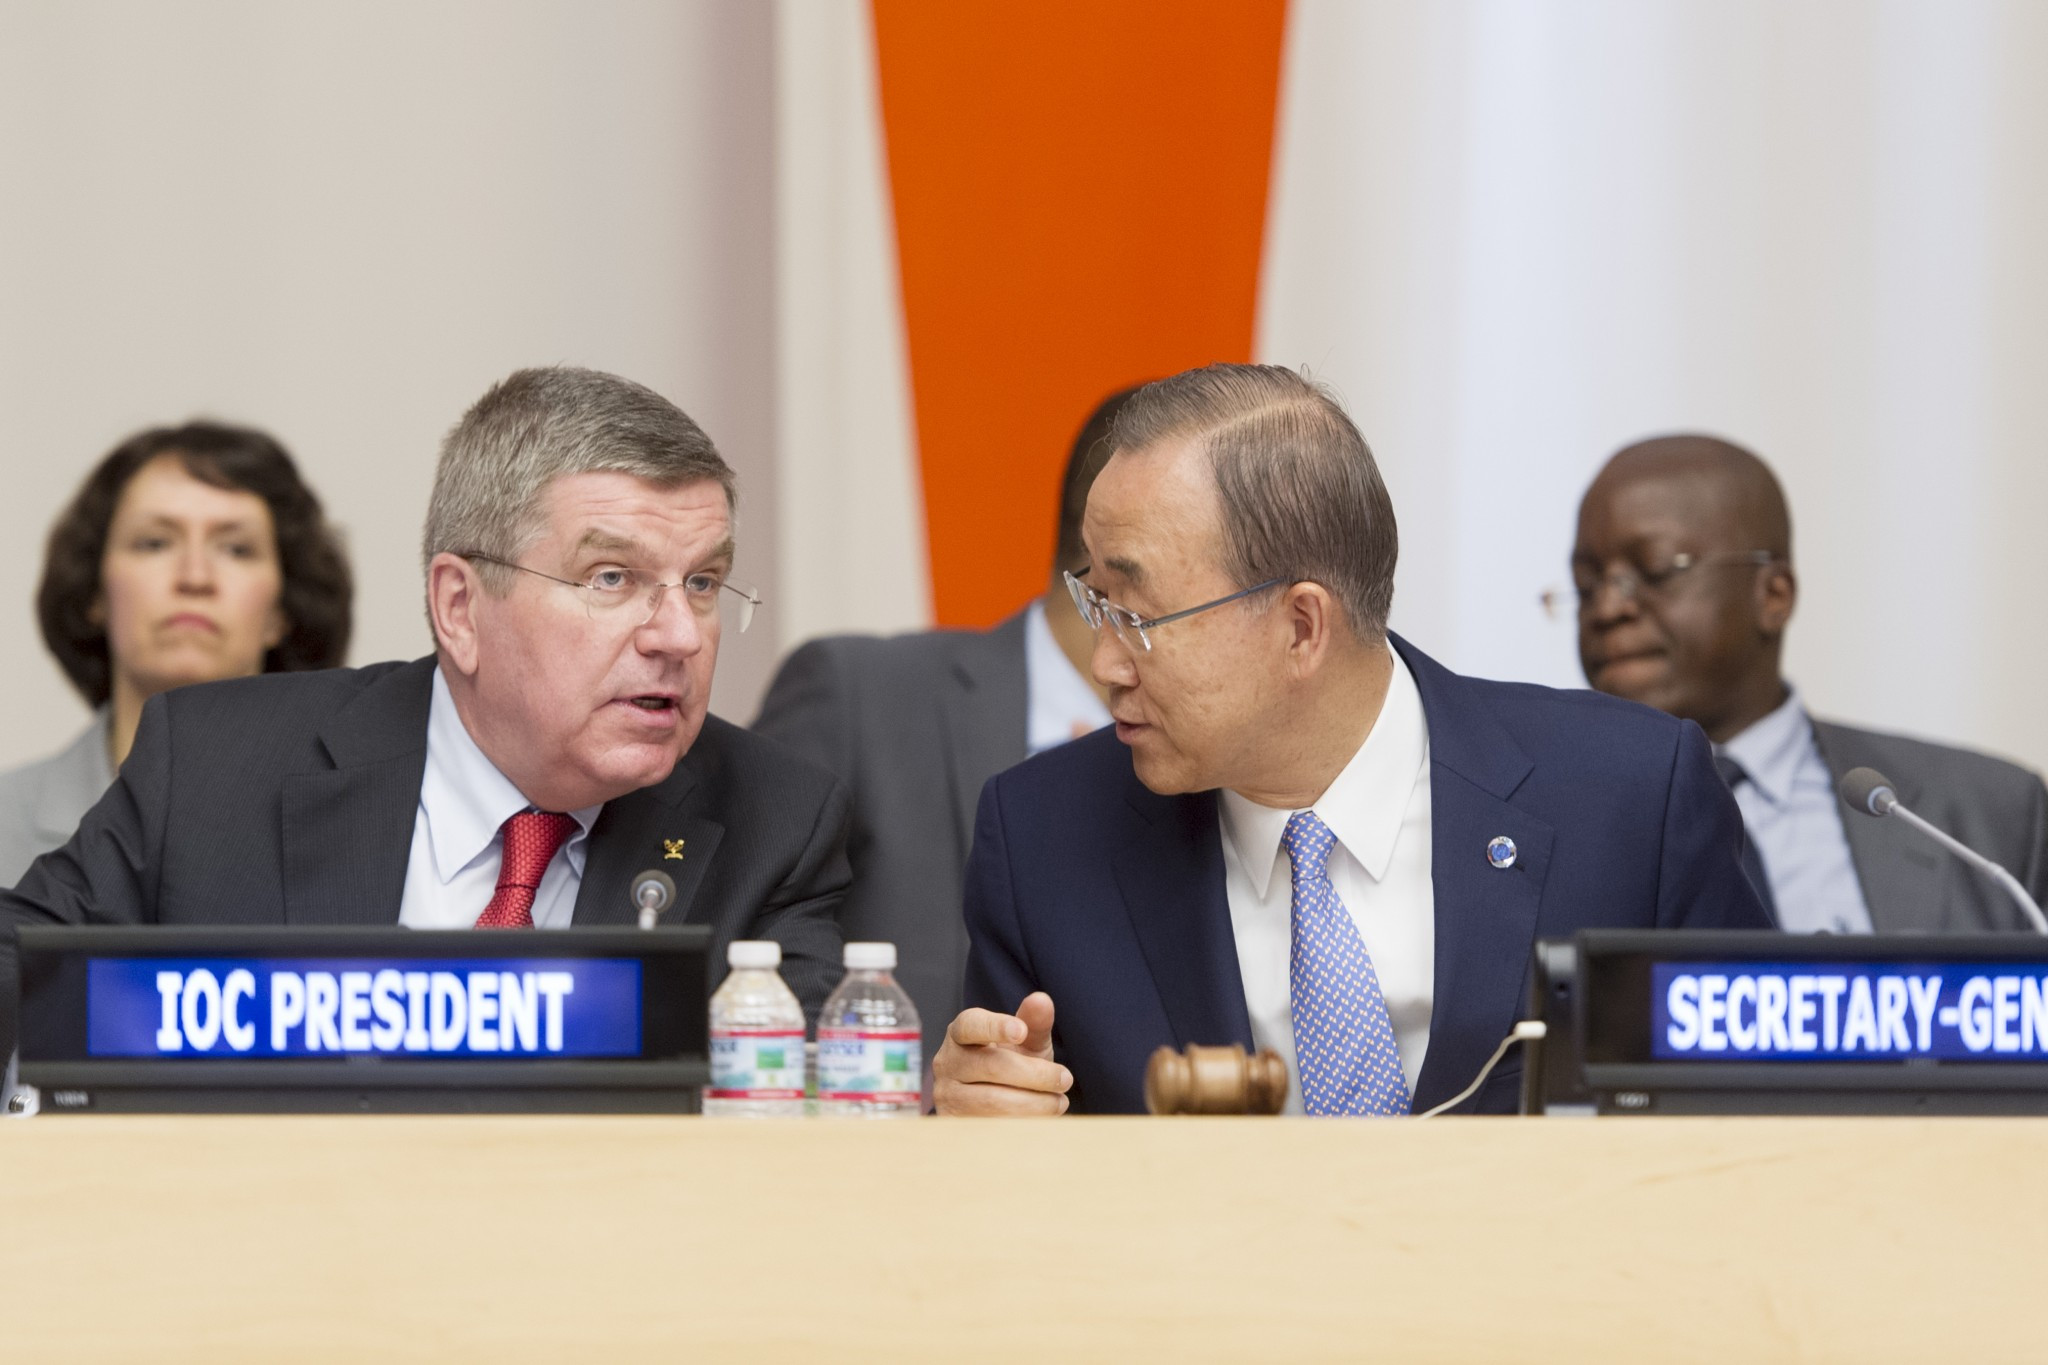 In sport all people are equal, Bach tells United Nations